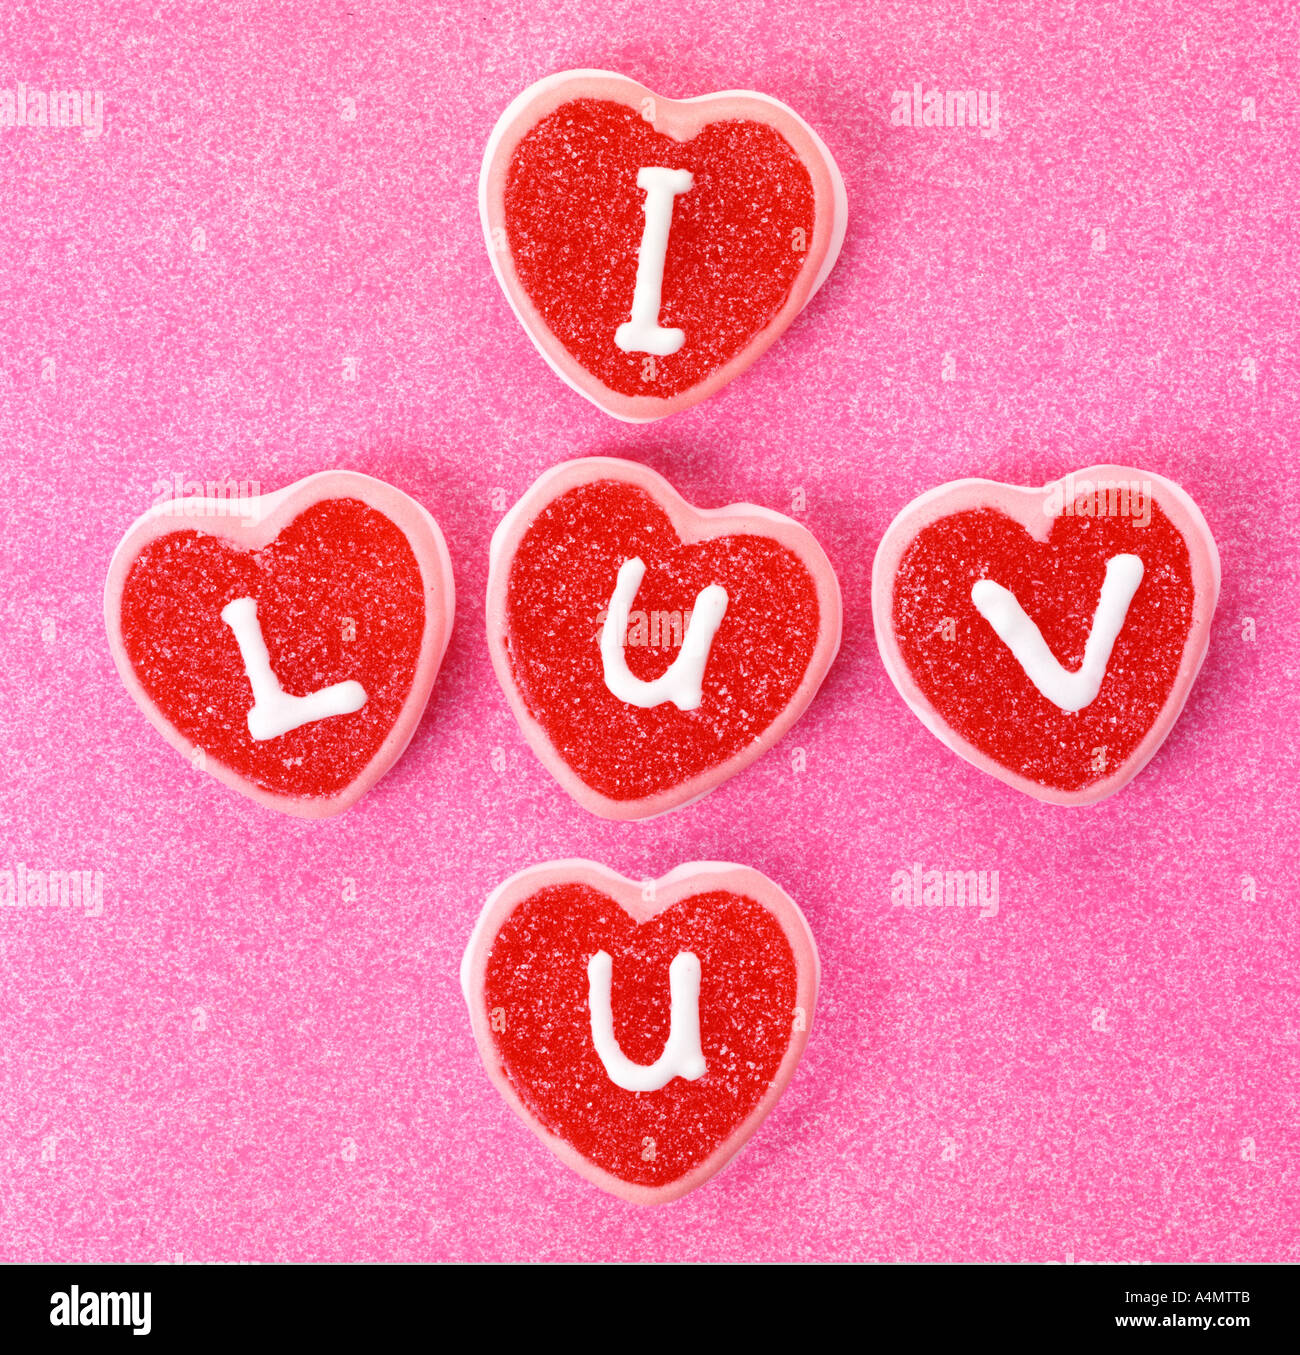 LOVE SWEETS / CANDY - Stock Image